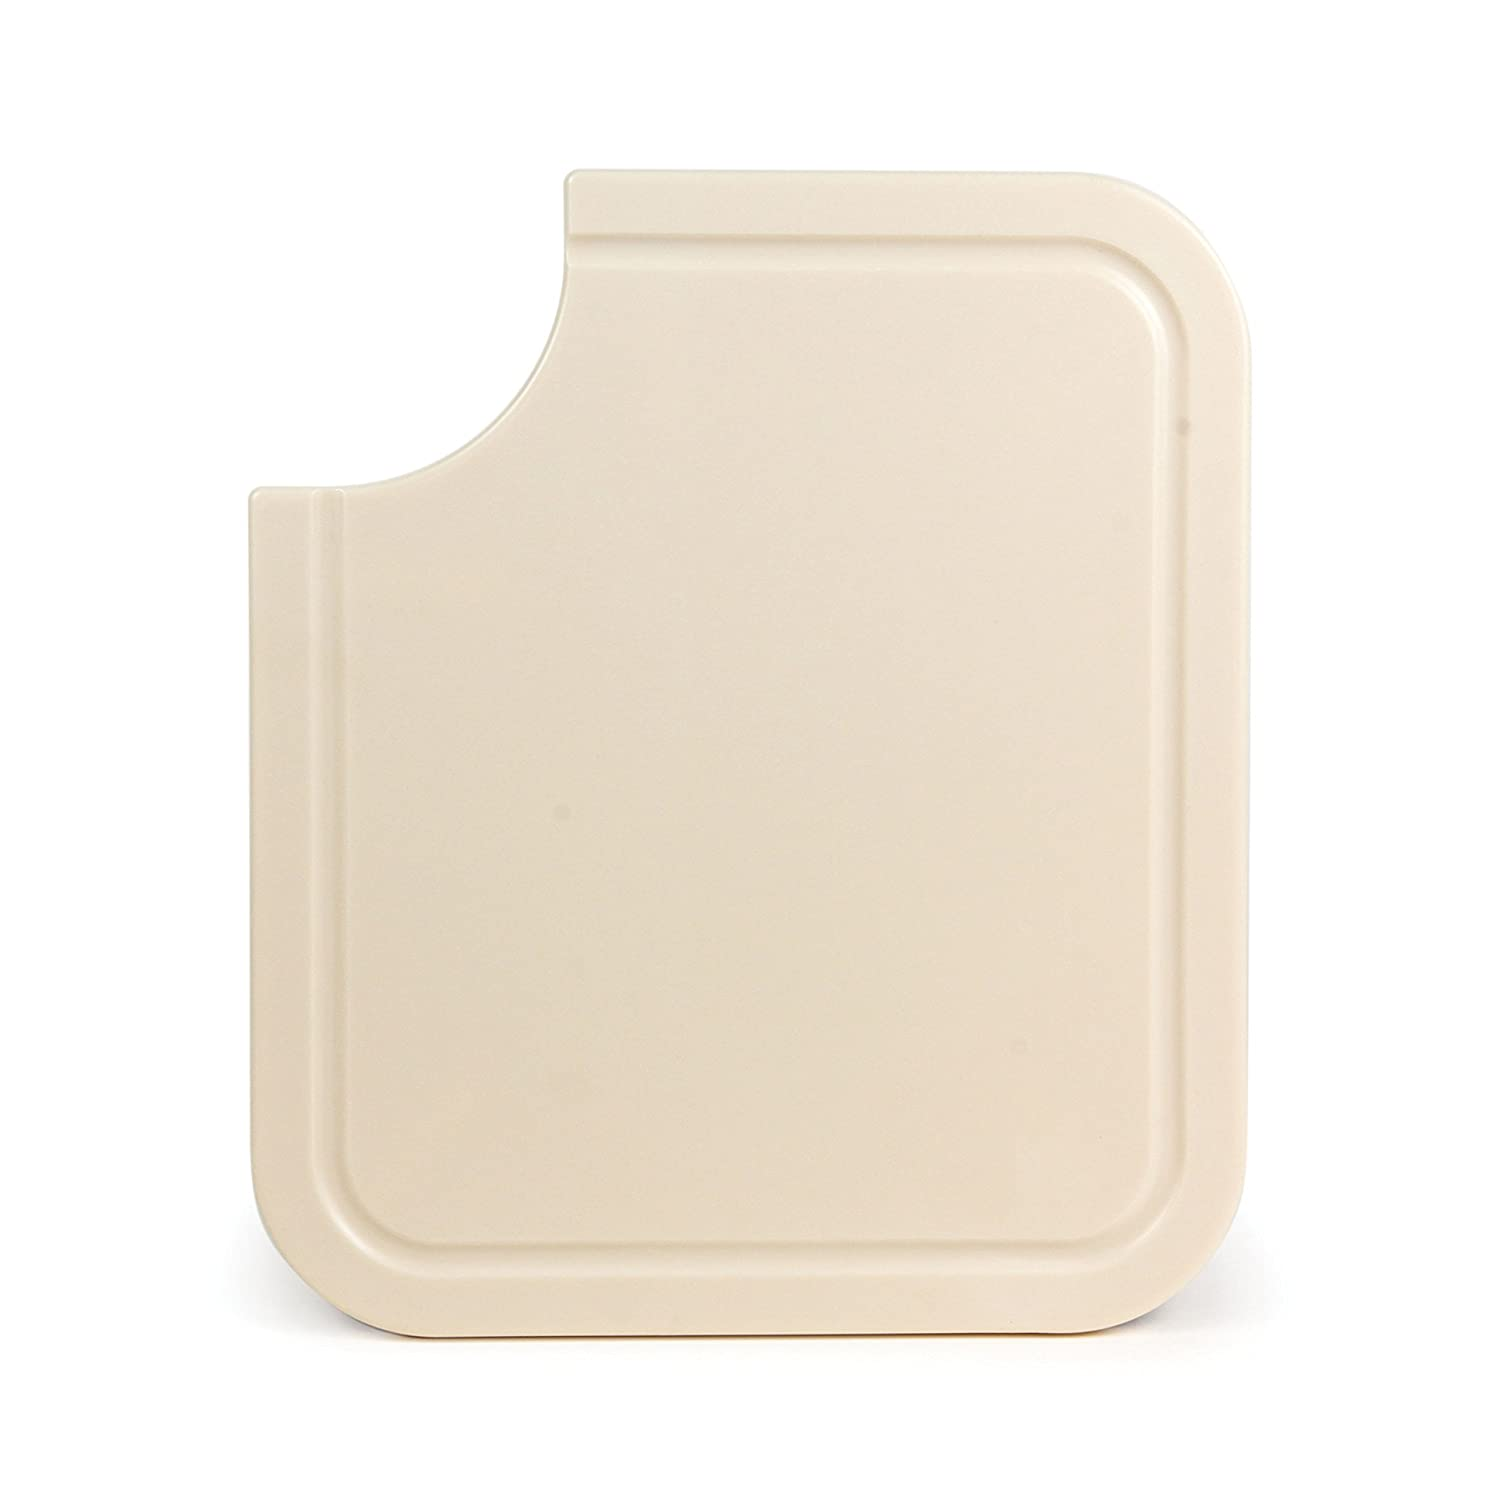 Camco 43857 RV Sink Mate Cutting Board (White)